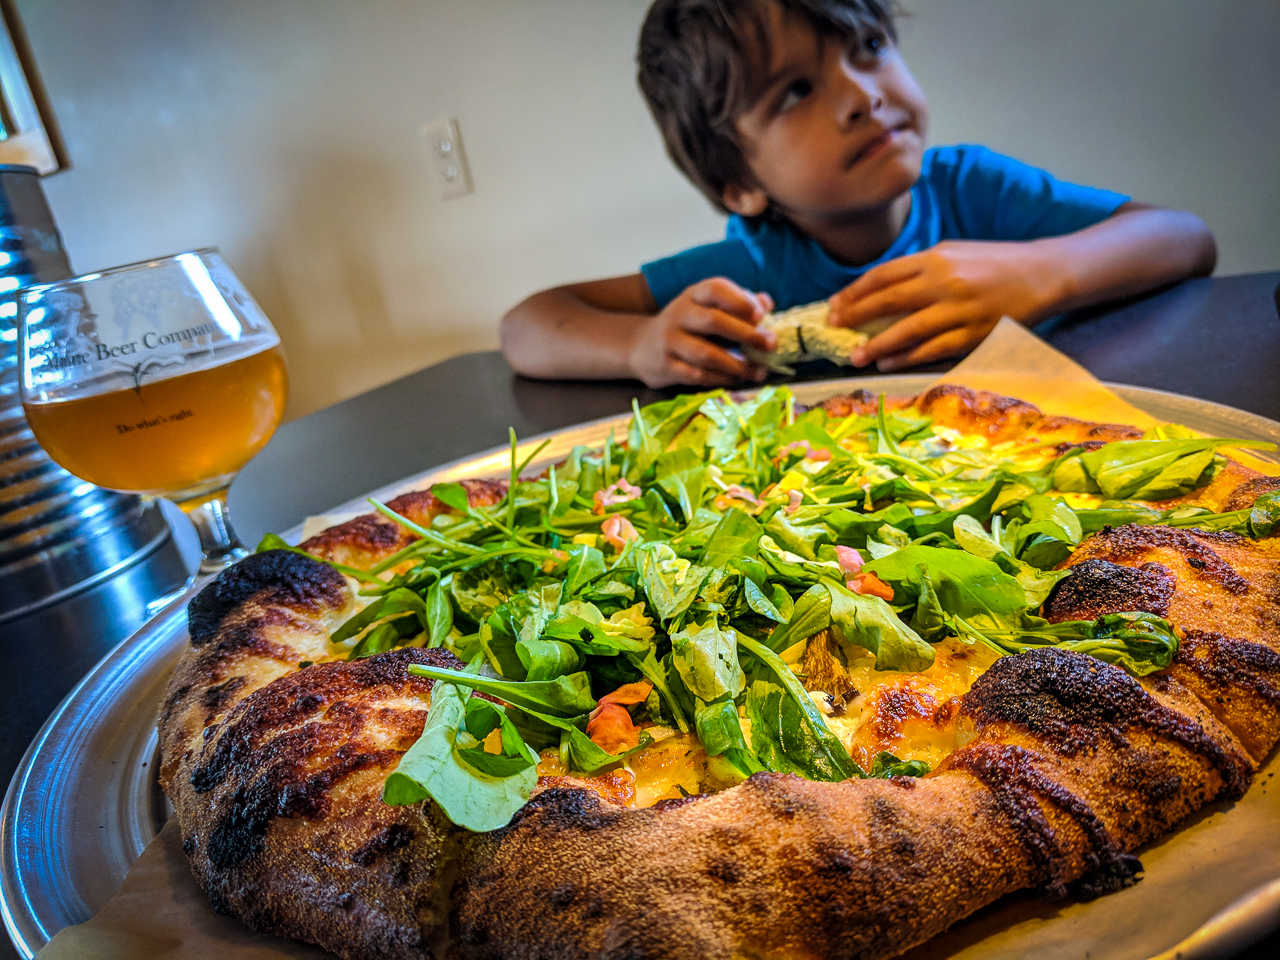 Wood Fired Pizza at the Maine Beer Company